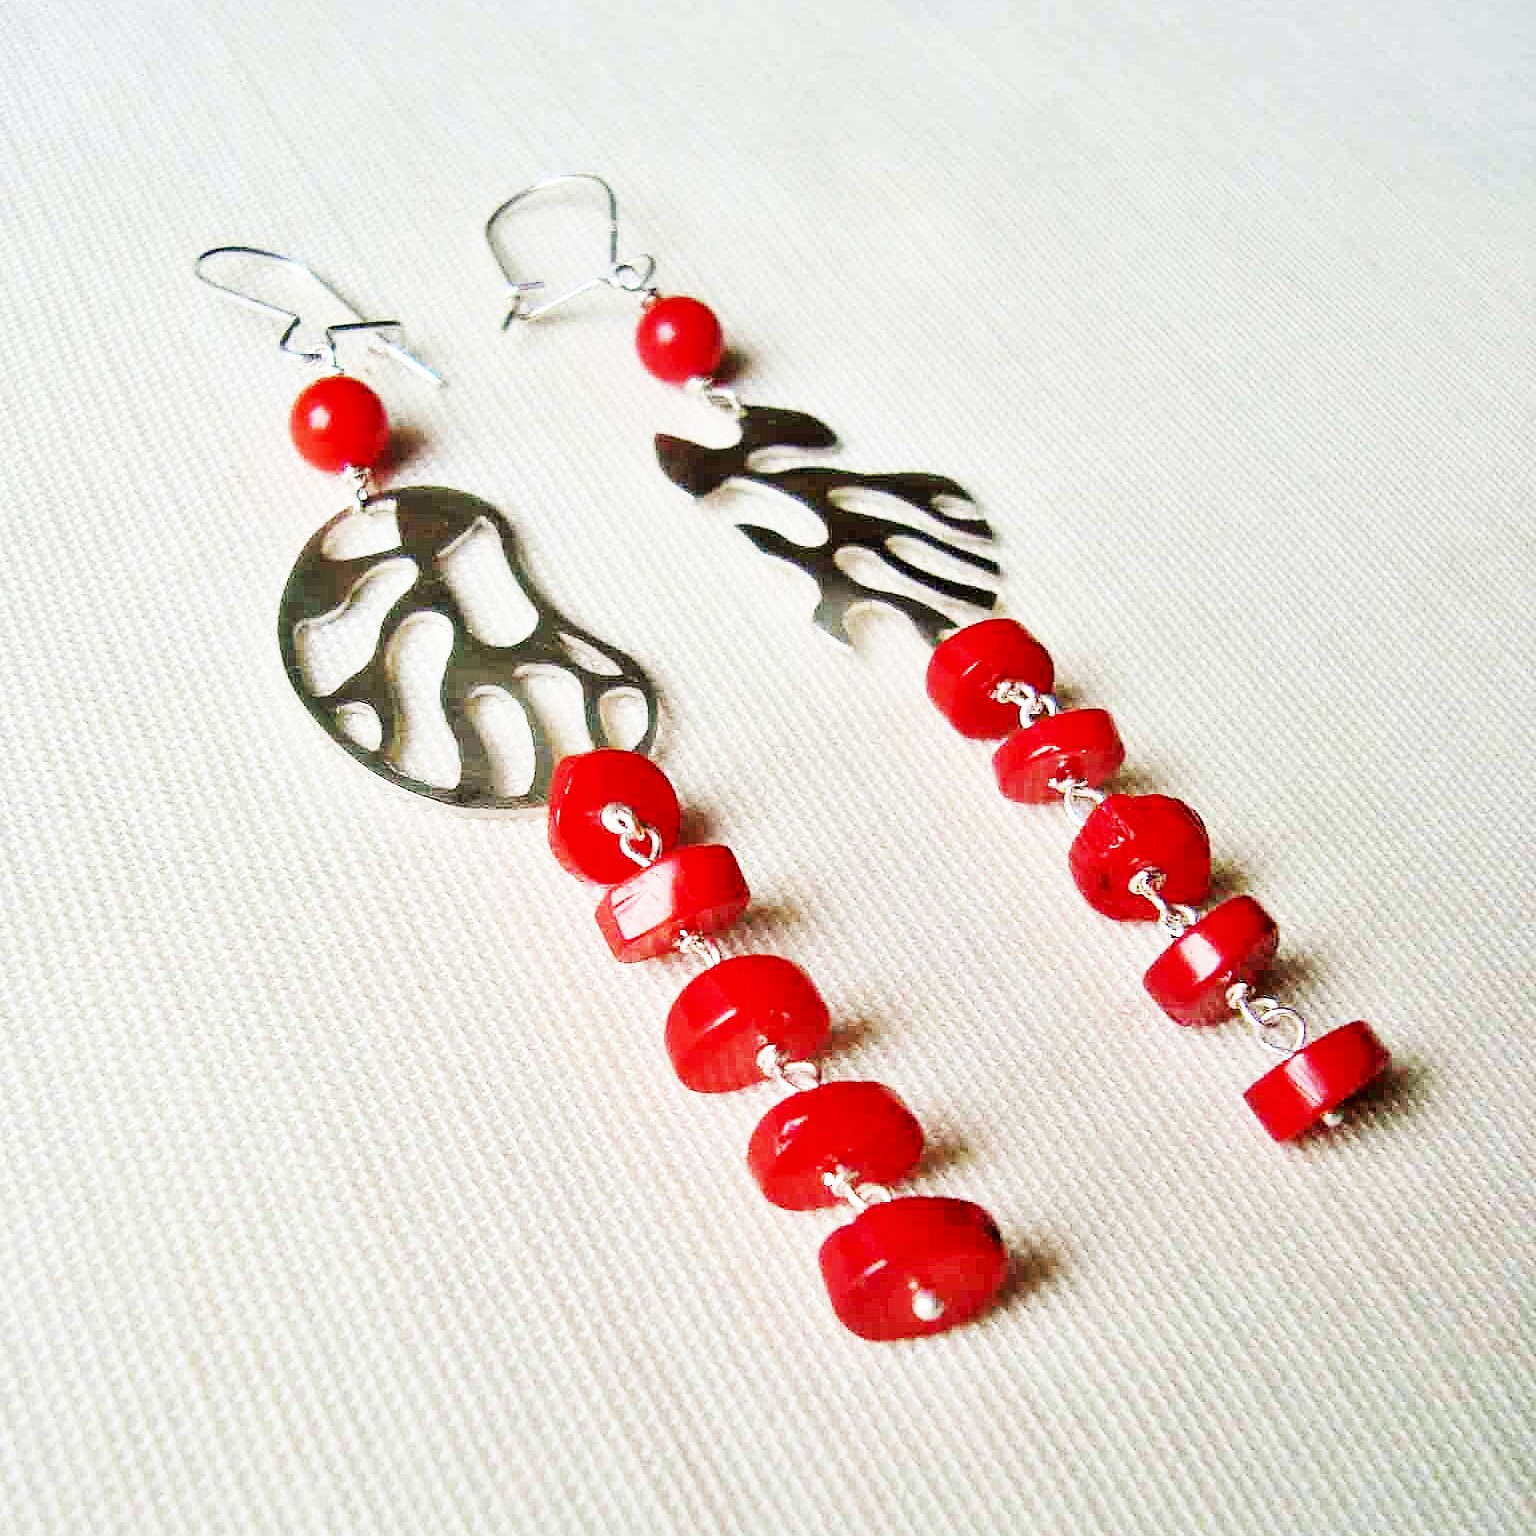 earings in silver and coral